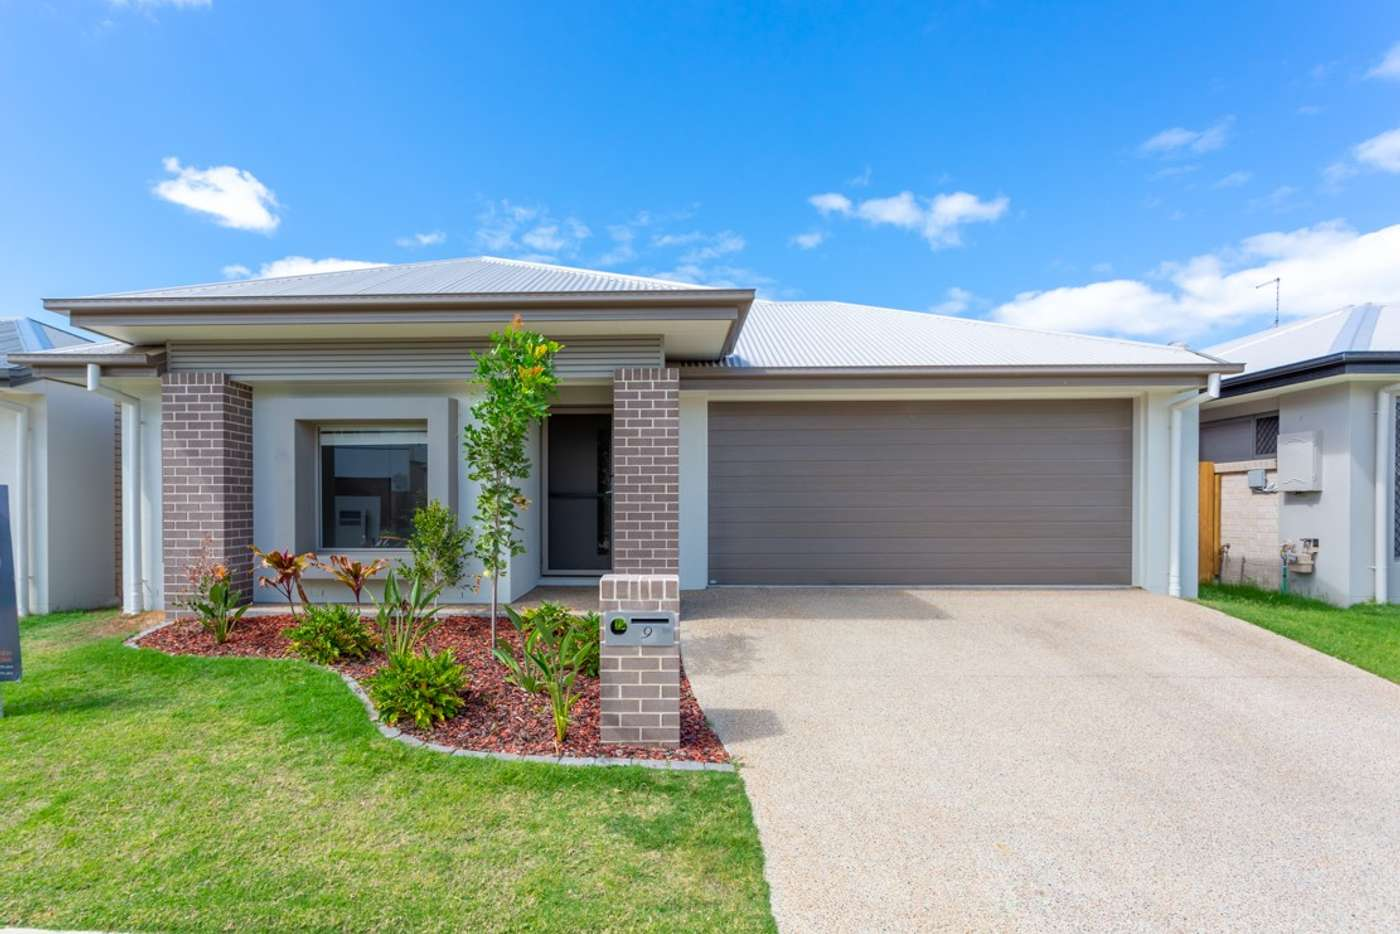 Main view of Homely house listing, 9 Brindabella Street, Newport QLD 4020